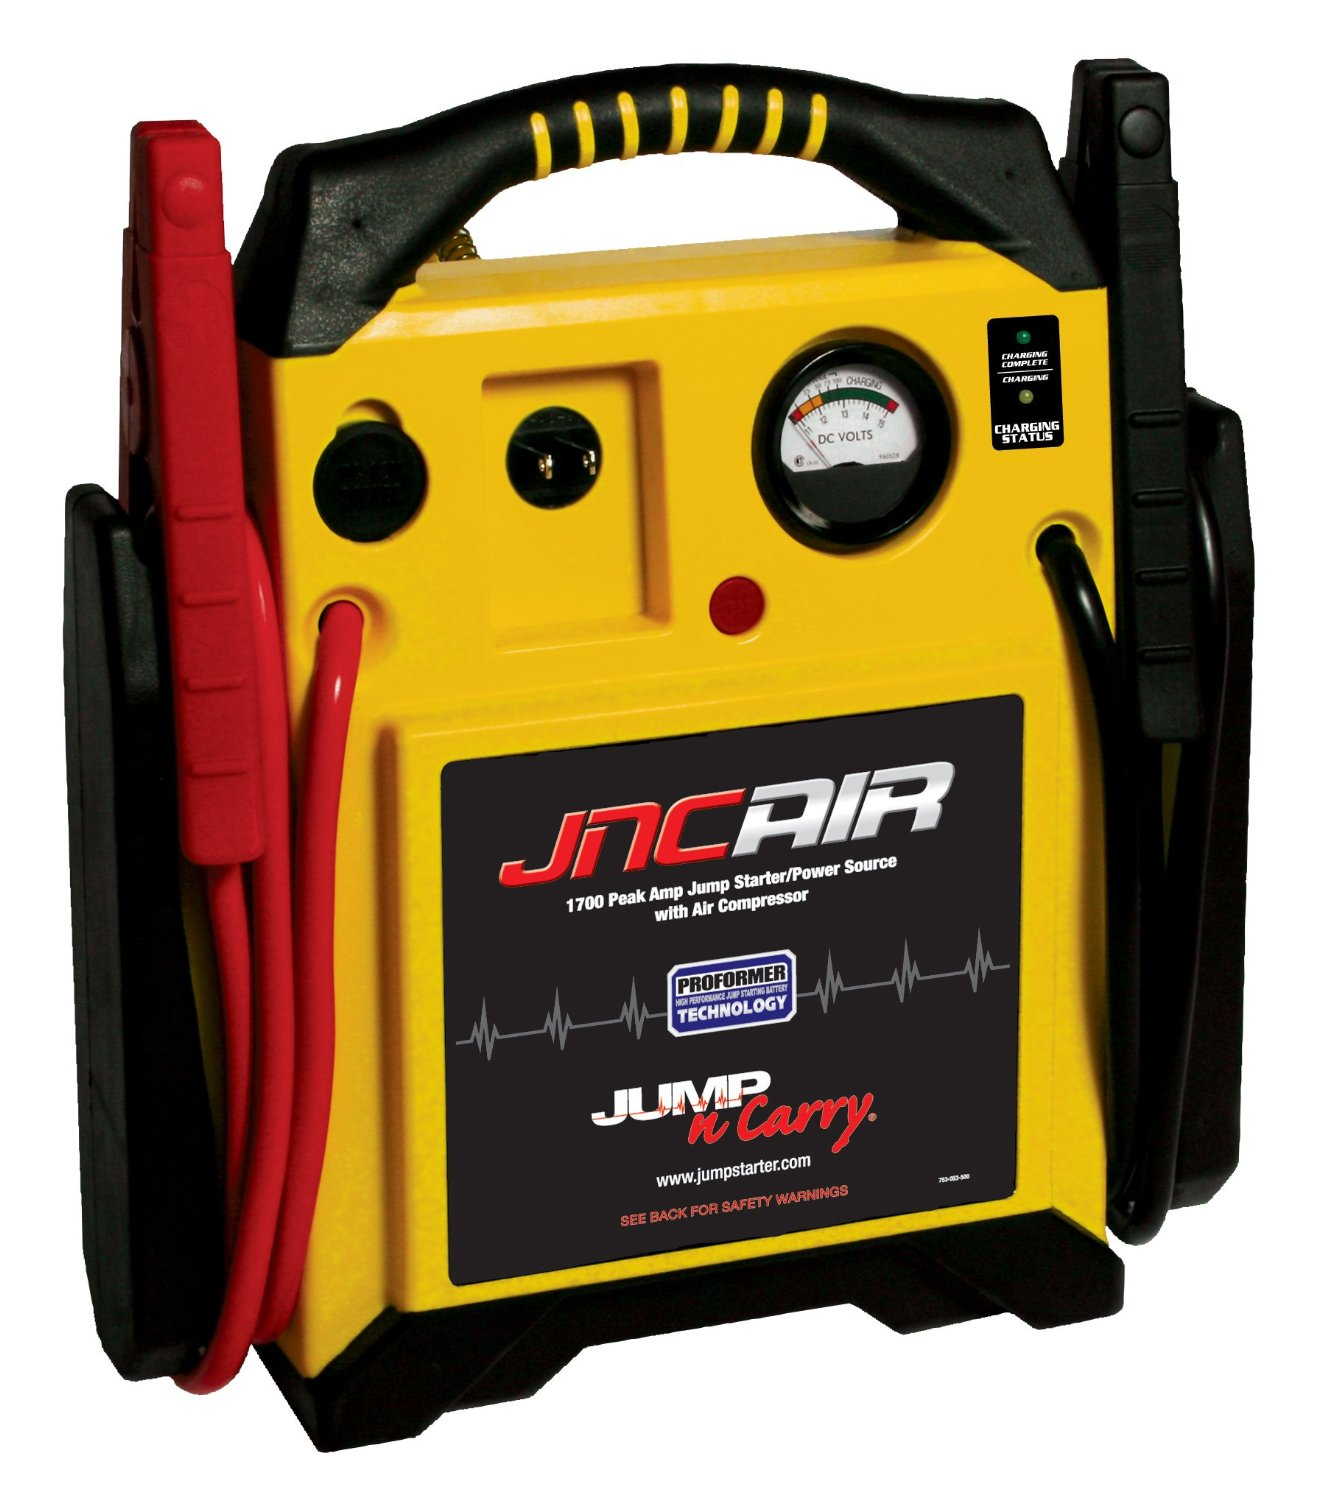 Car Jumper Battery Pack Reviews